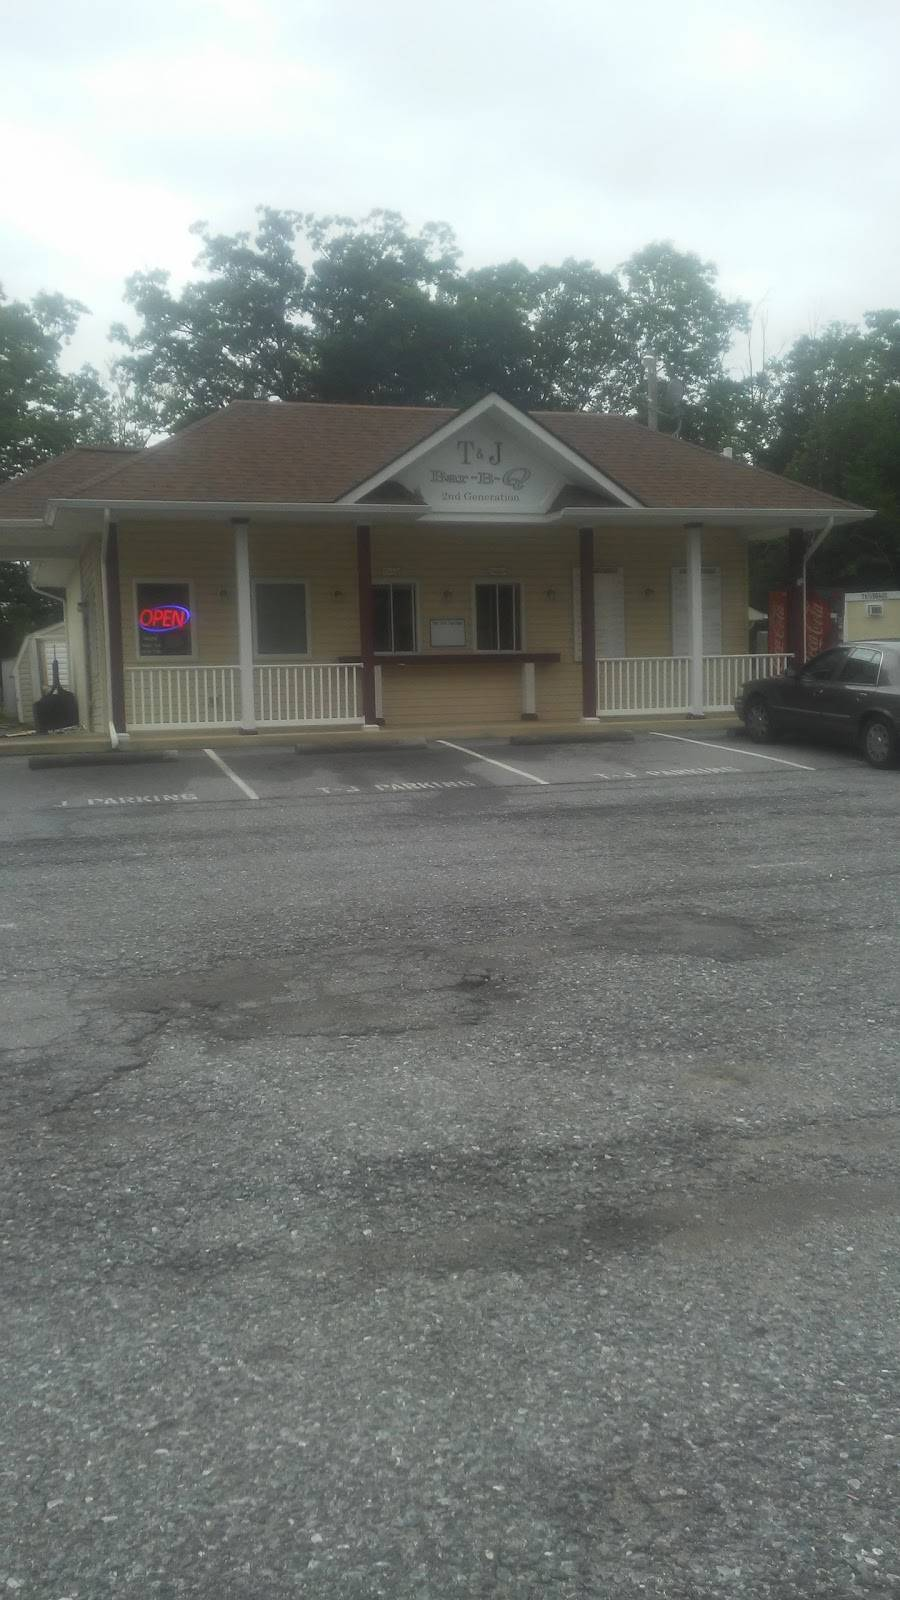 T and J Barbeque Pit 2nd Generation   restaurant   7670 Hawthorne Rd, La Plata, MD 20646, USA   3013929933 OR +1 301-392-9933